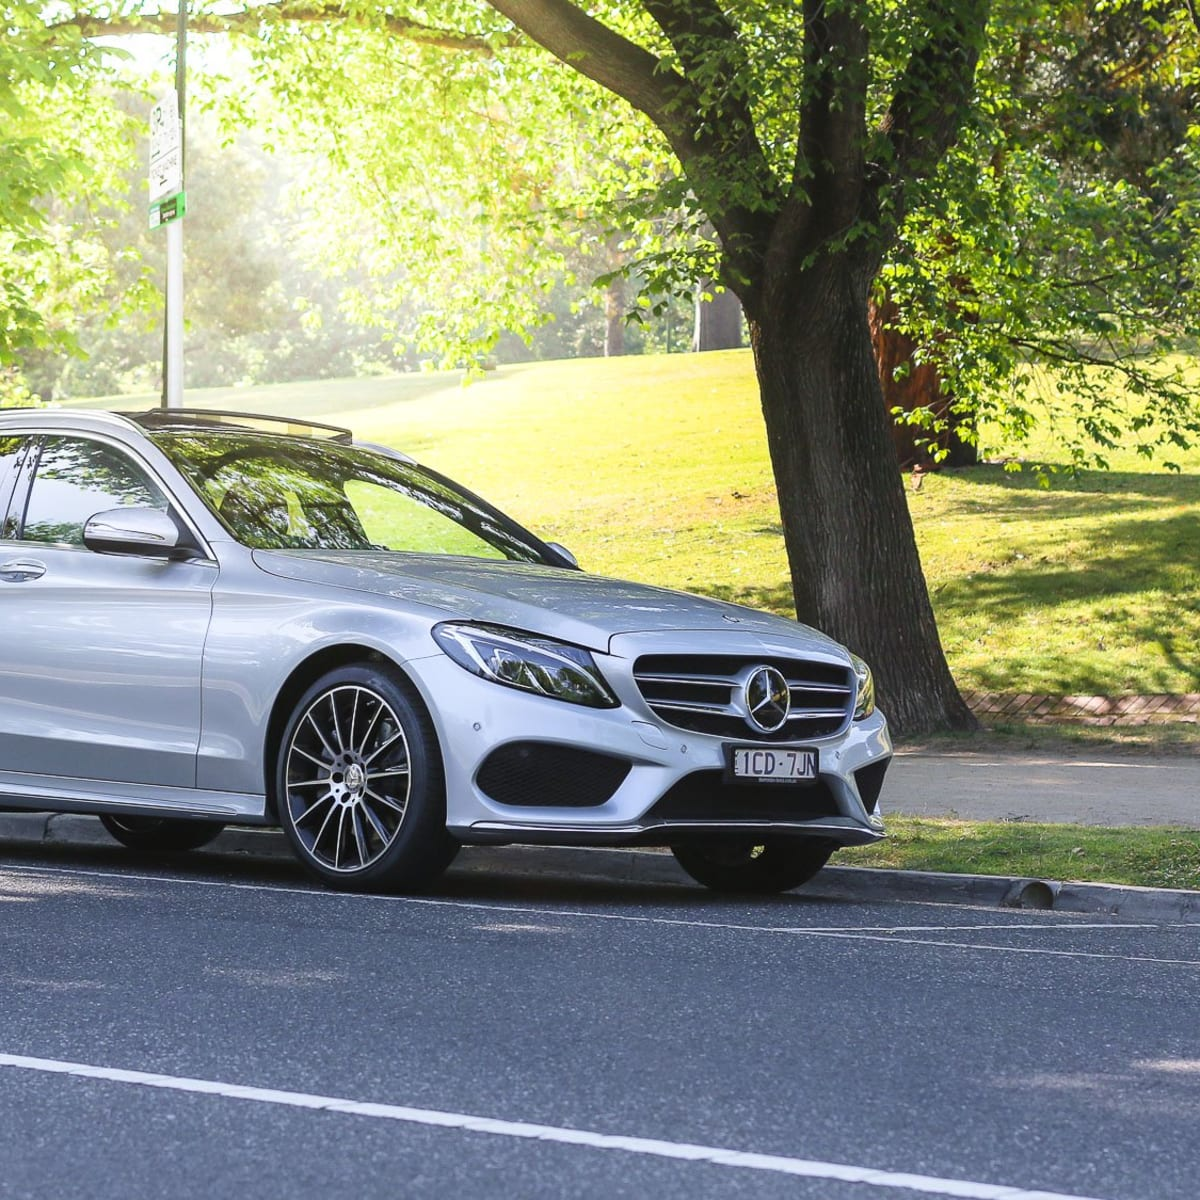 2015 Mercedes-Benz C200 Estate Review | CarAdvice